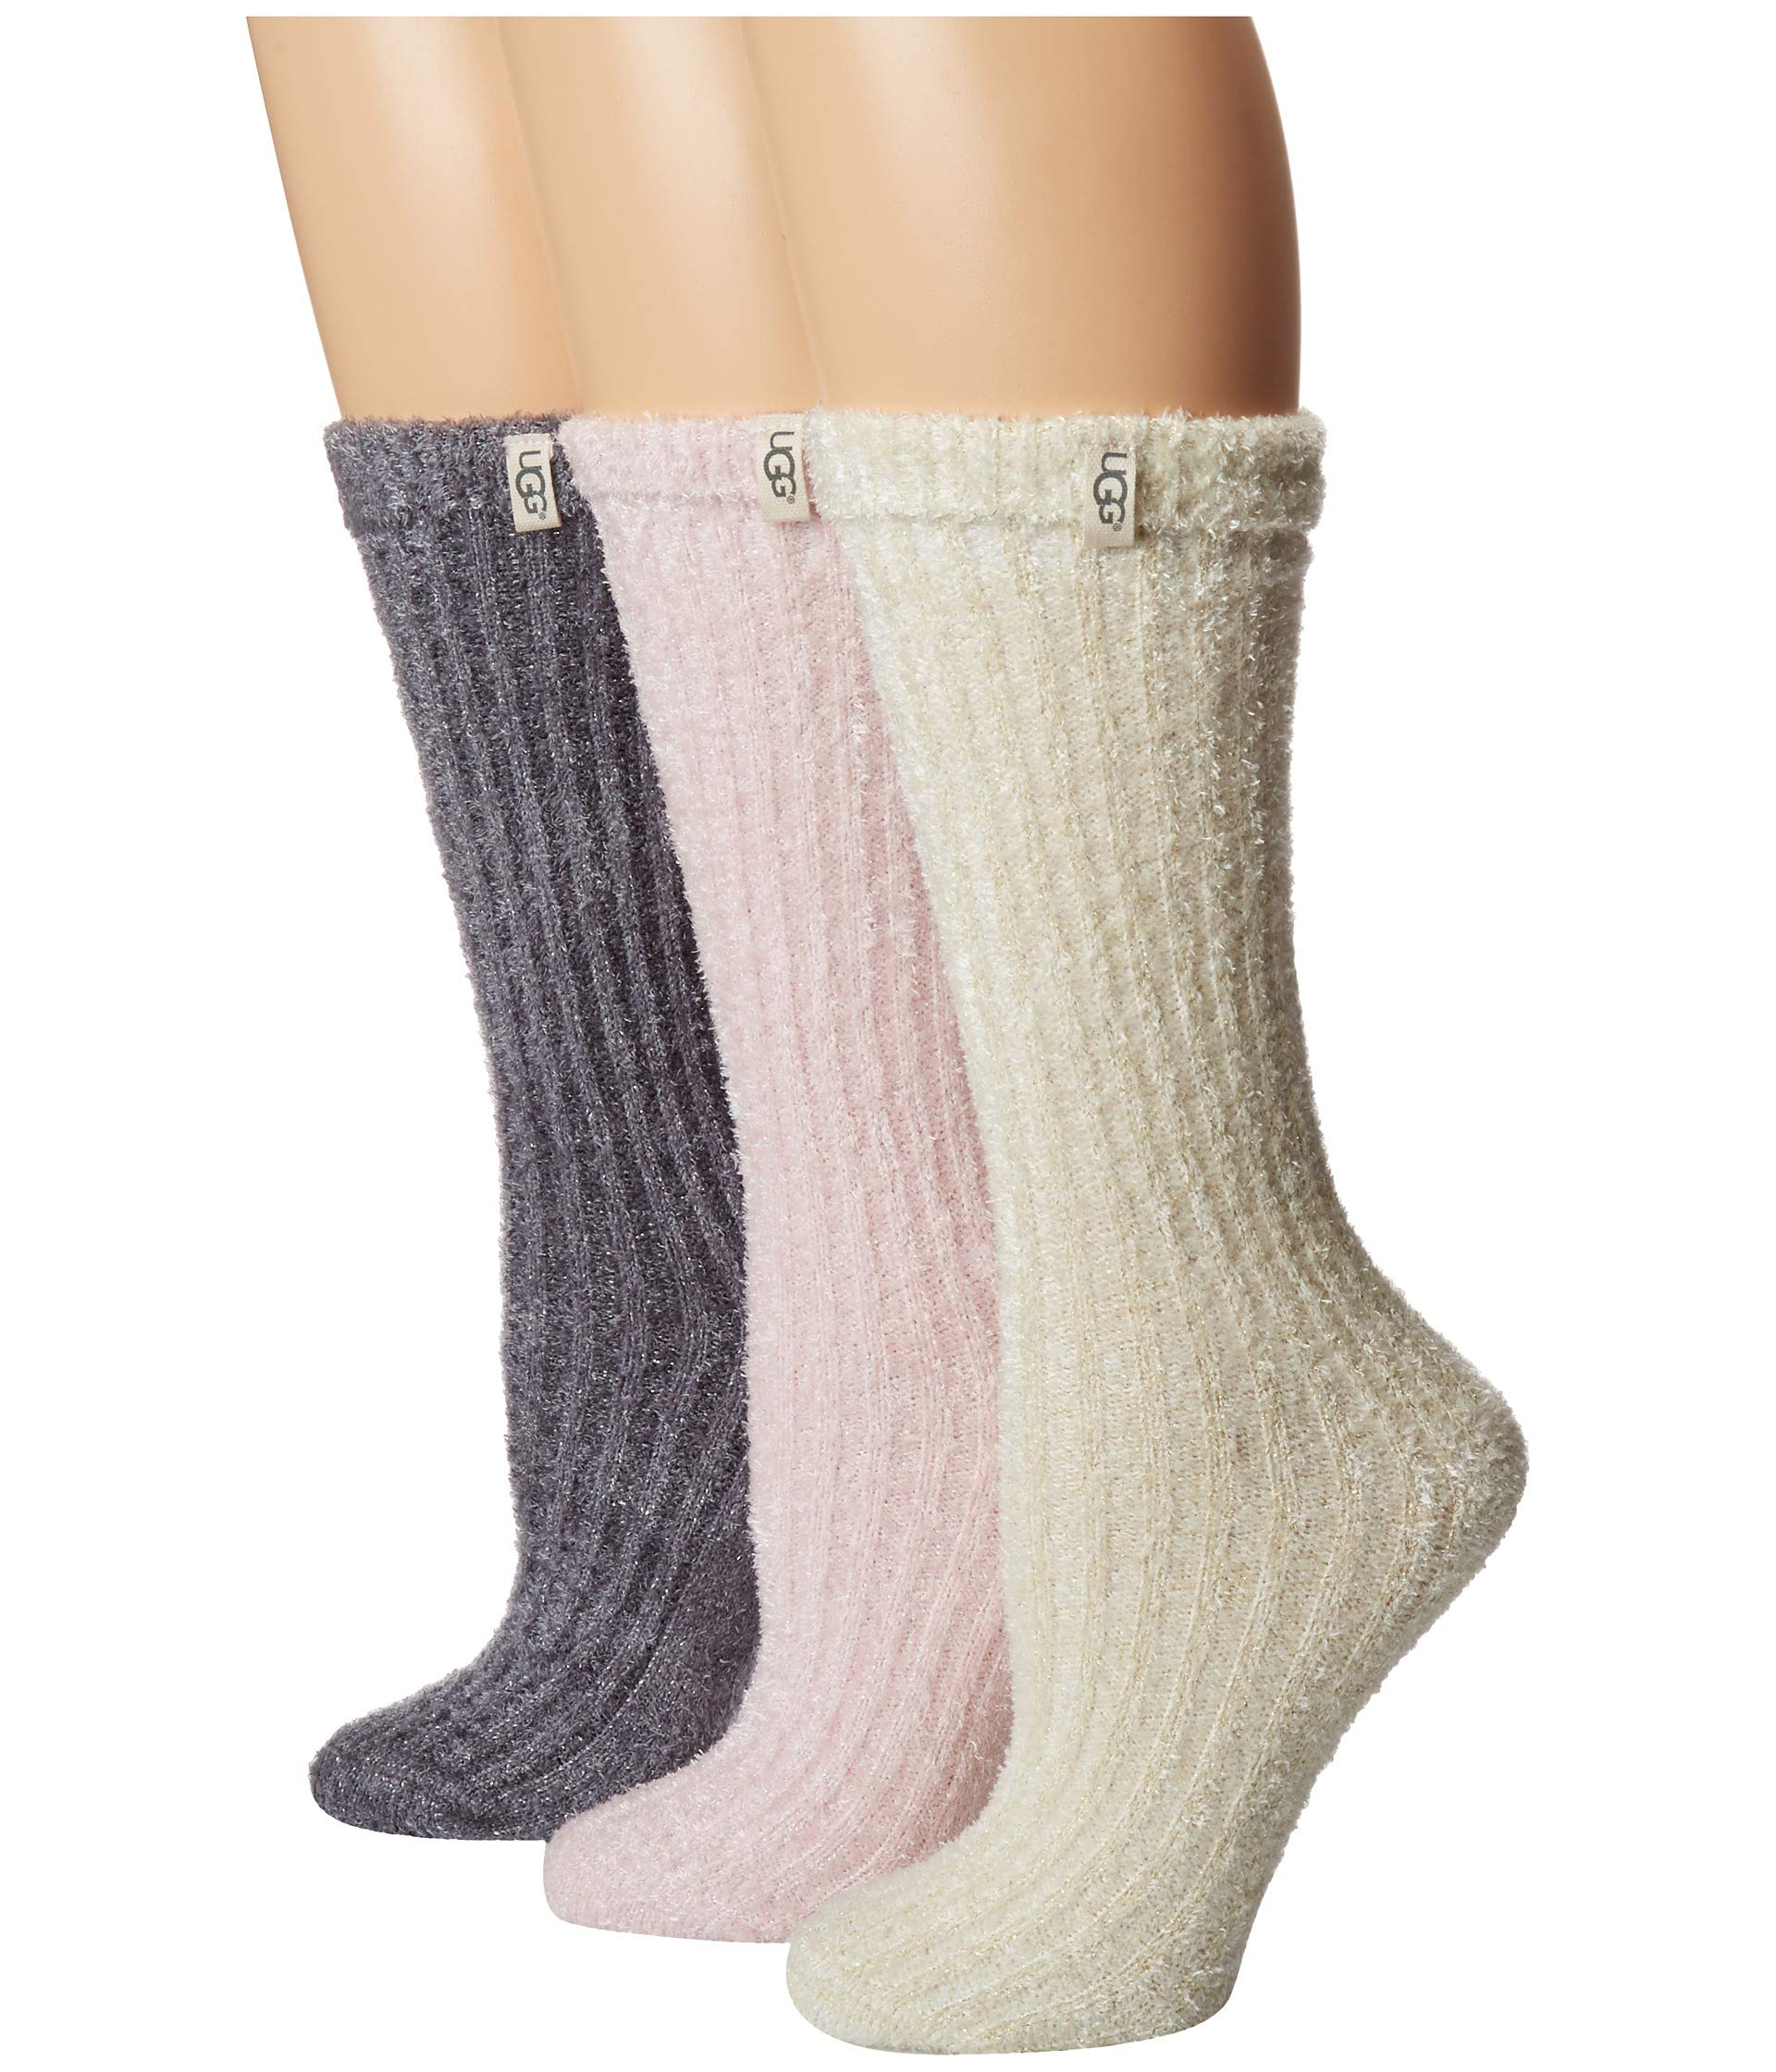 Cozy Socks Ugg Set Gift Multi Sparkle pxn86Wfn